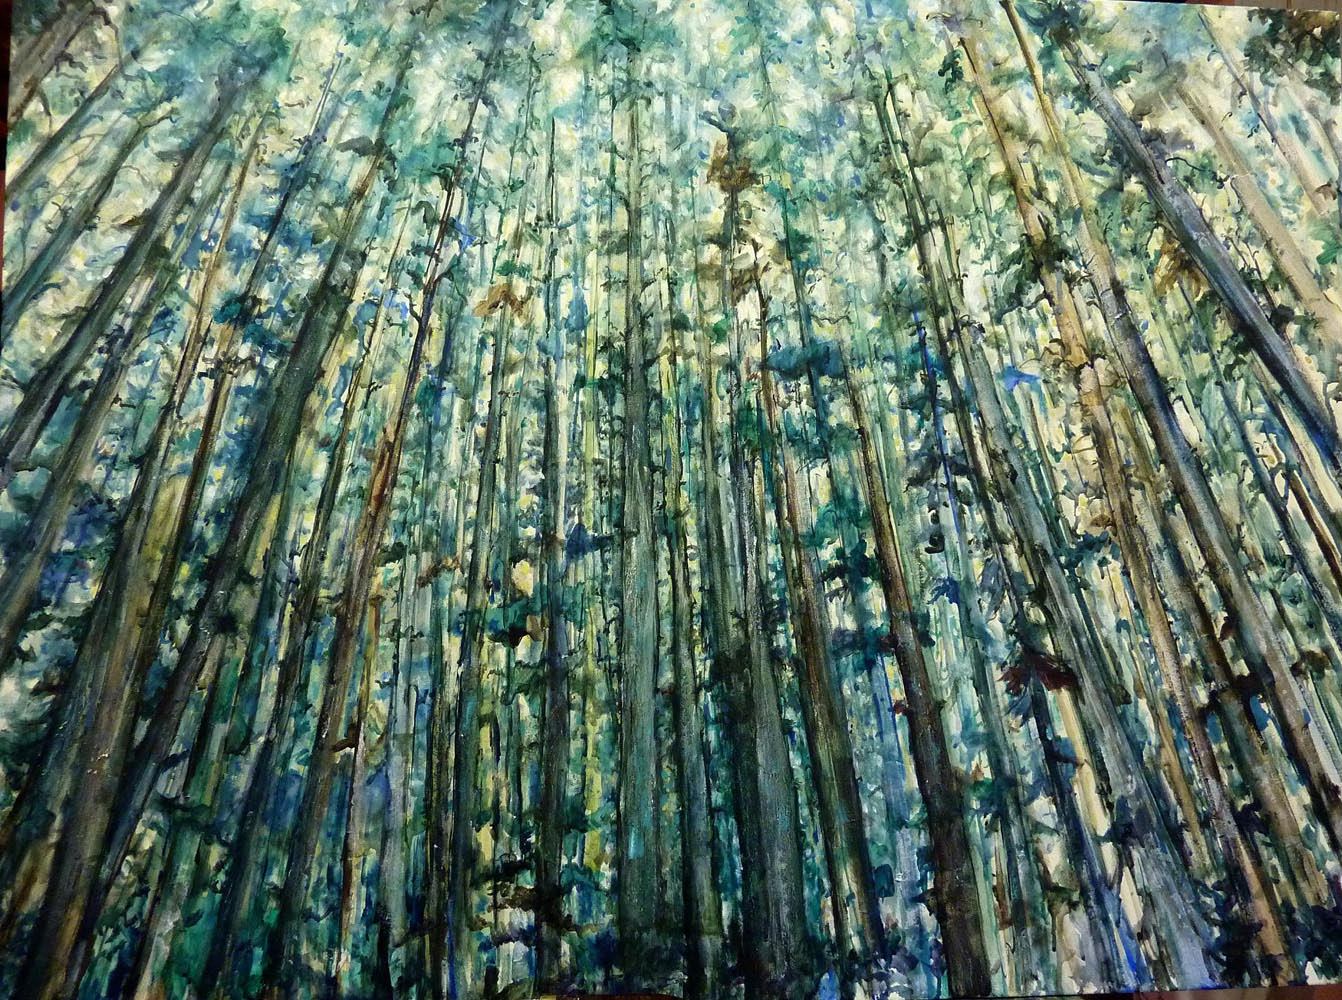 the trees | Landscapes of British Columbia | Artist painter Kim Pollard | Canada | Pacific Northwest